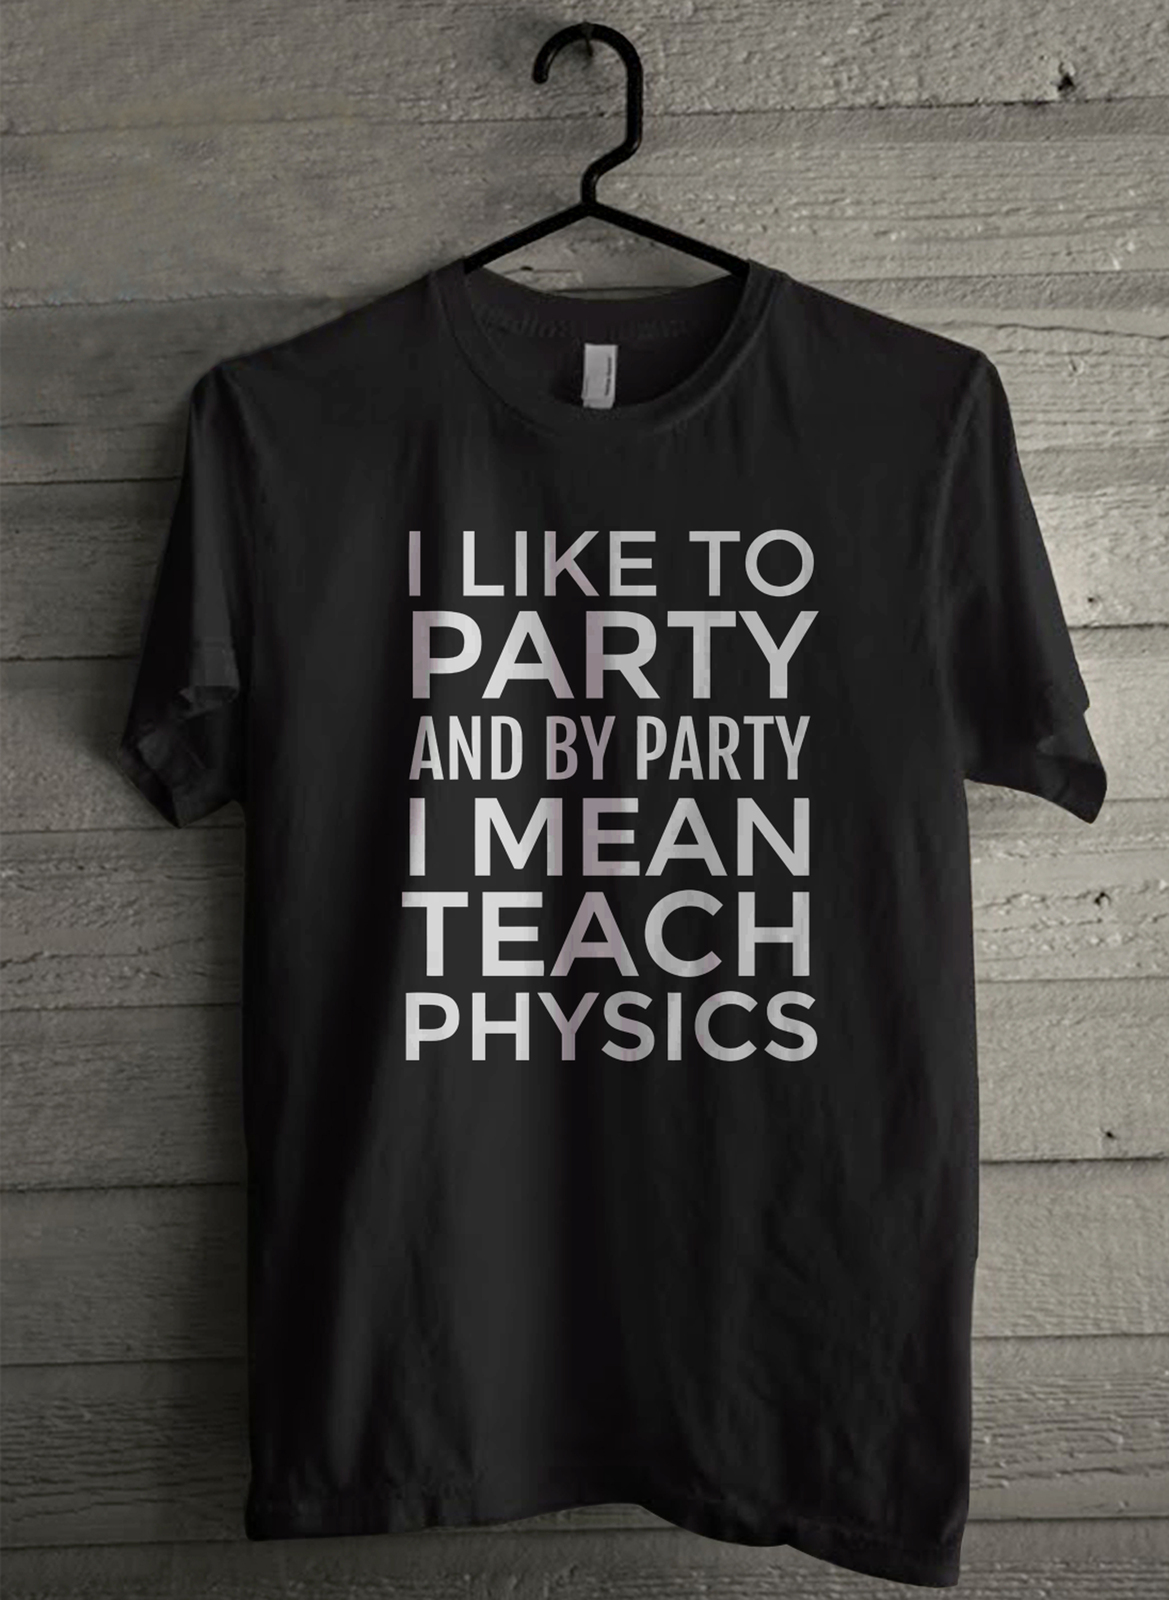 I lke to party and by party i mean teach physics